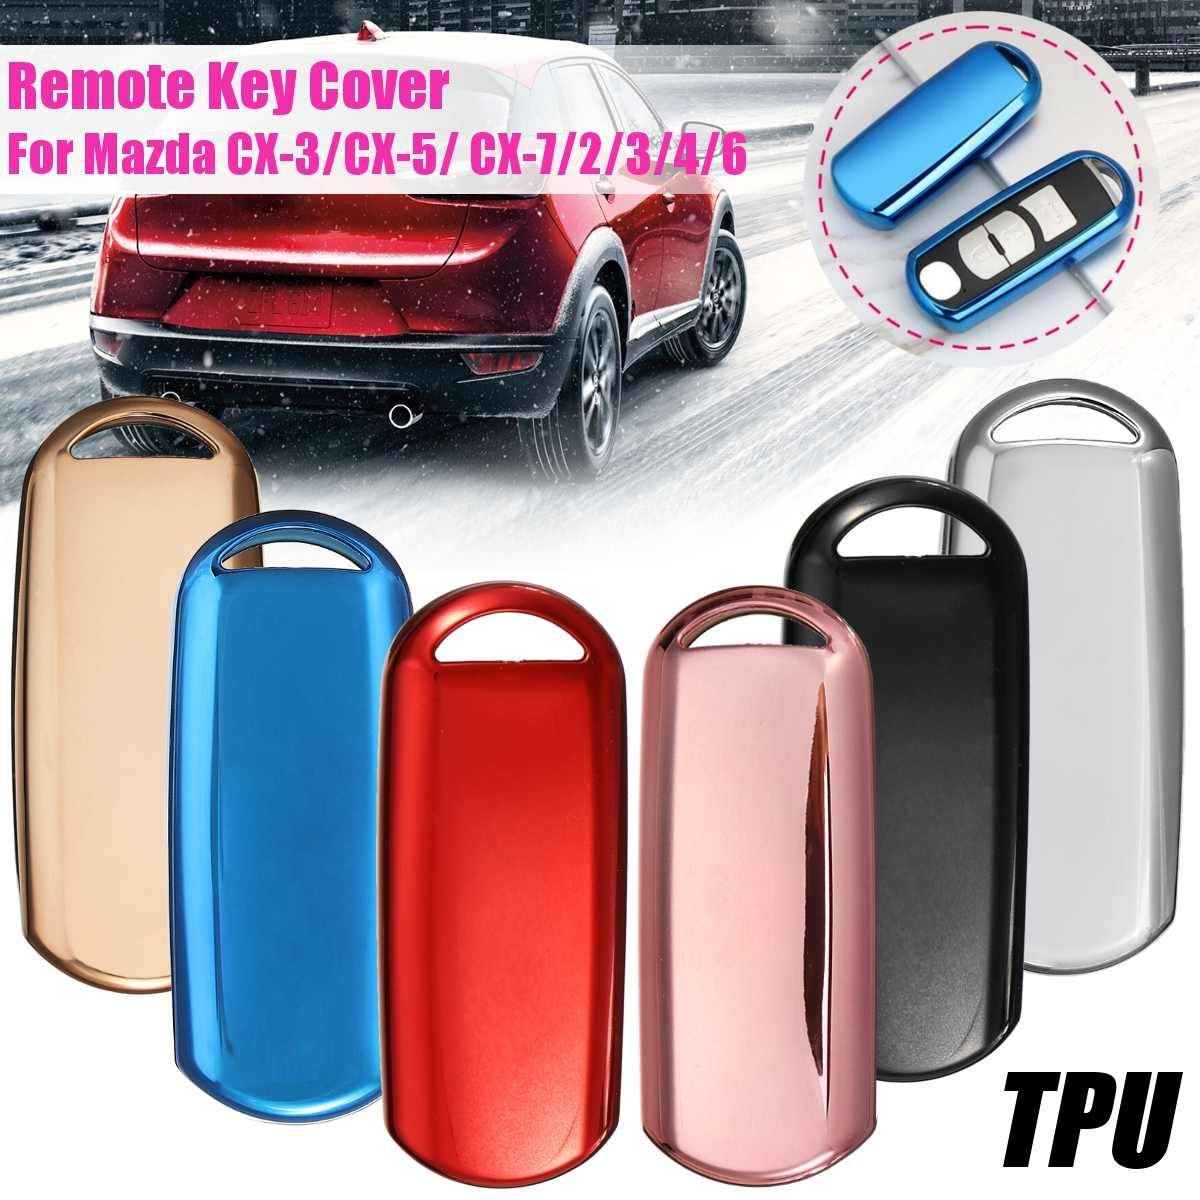 Car Soft Tpu Remote Key Cover for <font><b>MAZDA</b></font> 2 3 5 6 <font><b>Cx</b></font> 3 <font><b>Cx</b></font> 5 <font><b>Cx</b></font> 7 <font><b>Cx</b></font> <font><b>9</b></font> Mx 3 Mx 5 323 Car Styling Shell Case Protection <font><b>Accessories</b></font> image